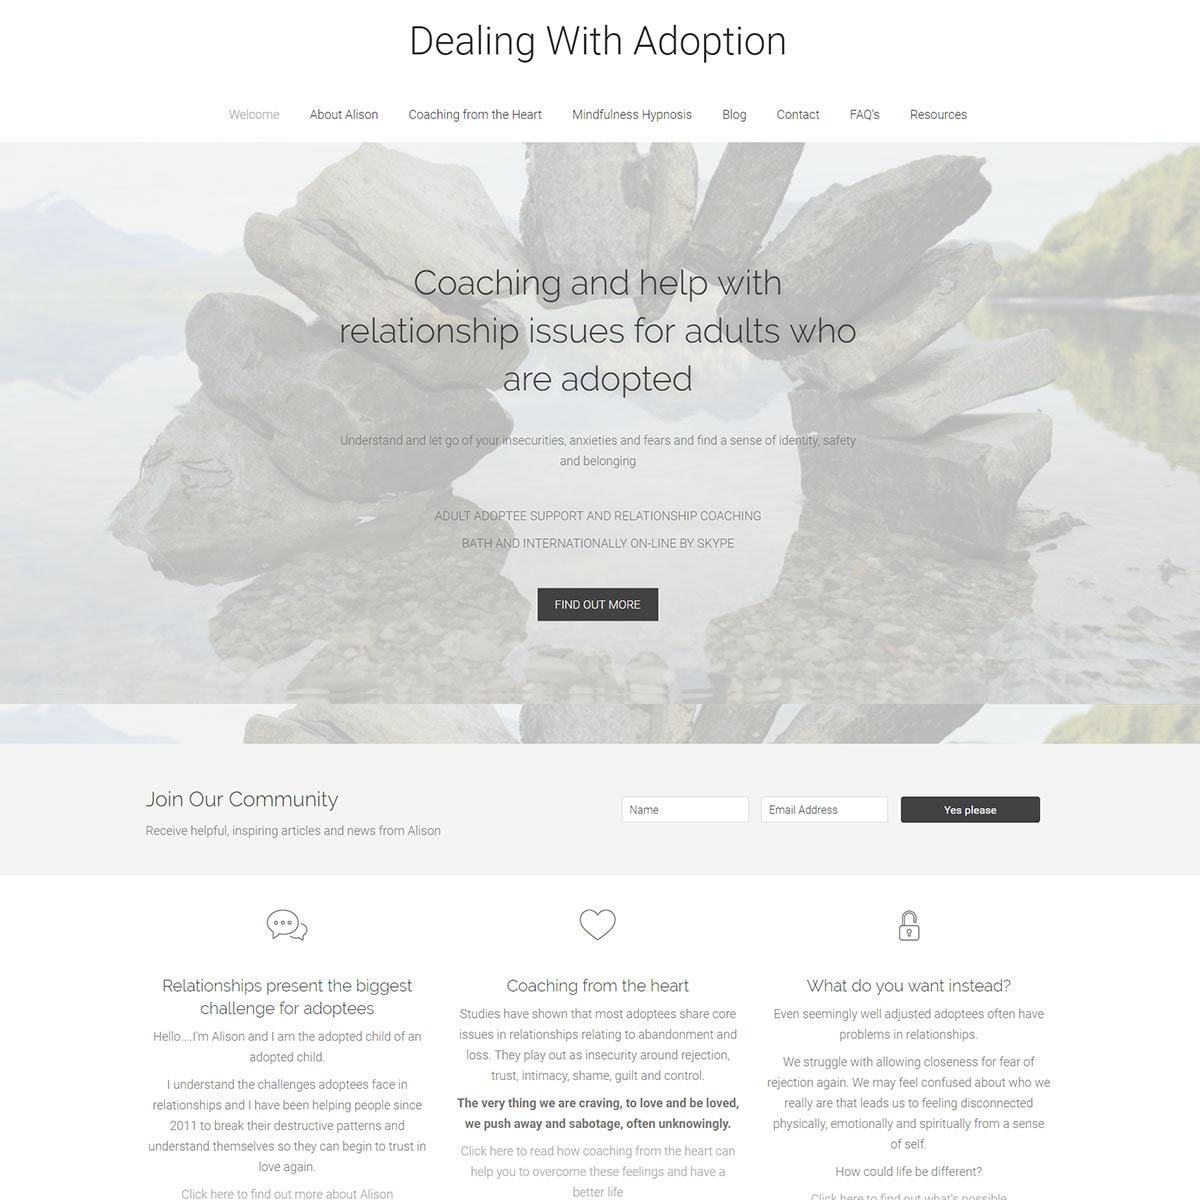 dealingwithadoption